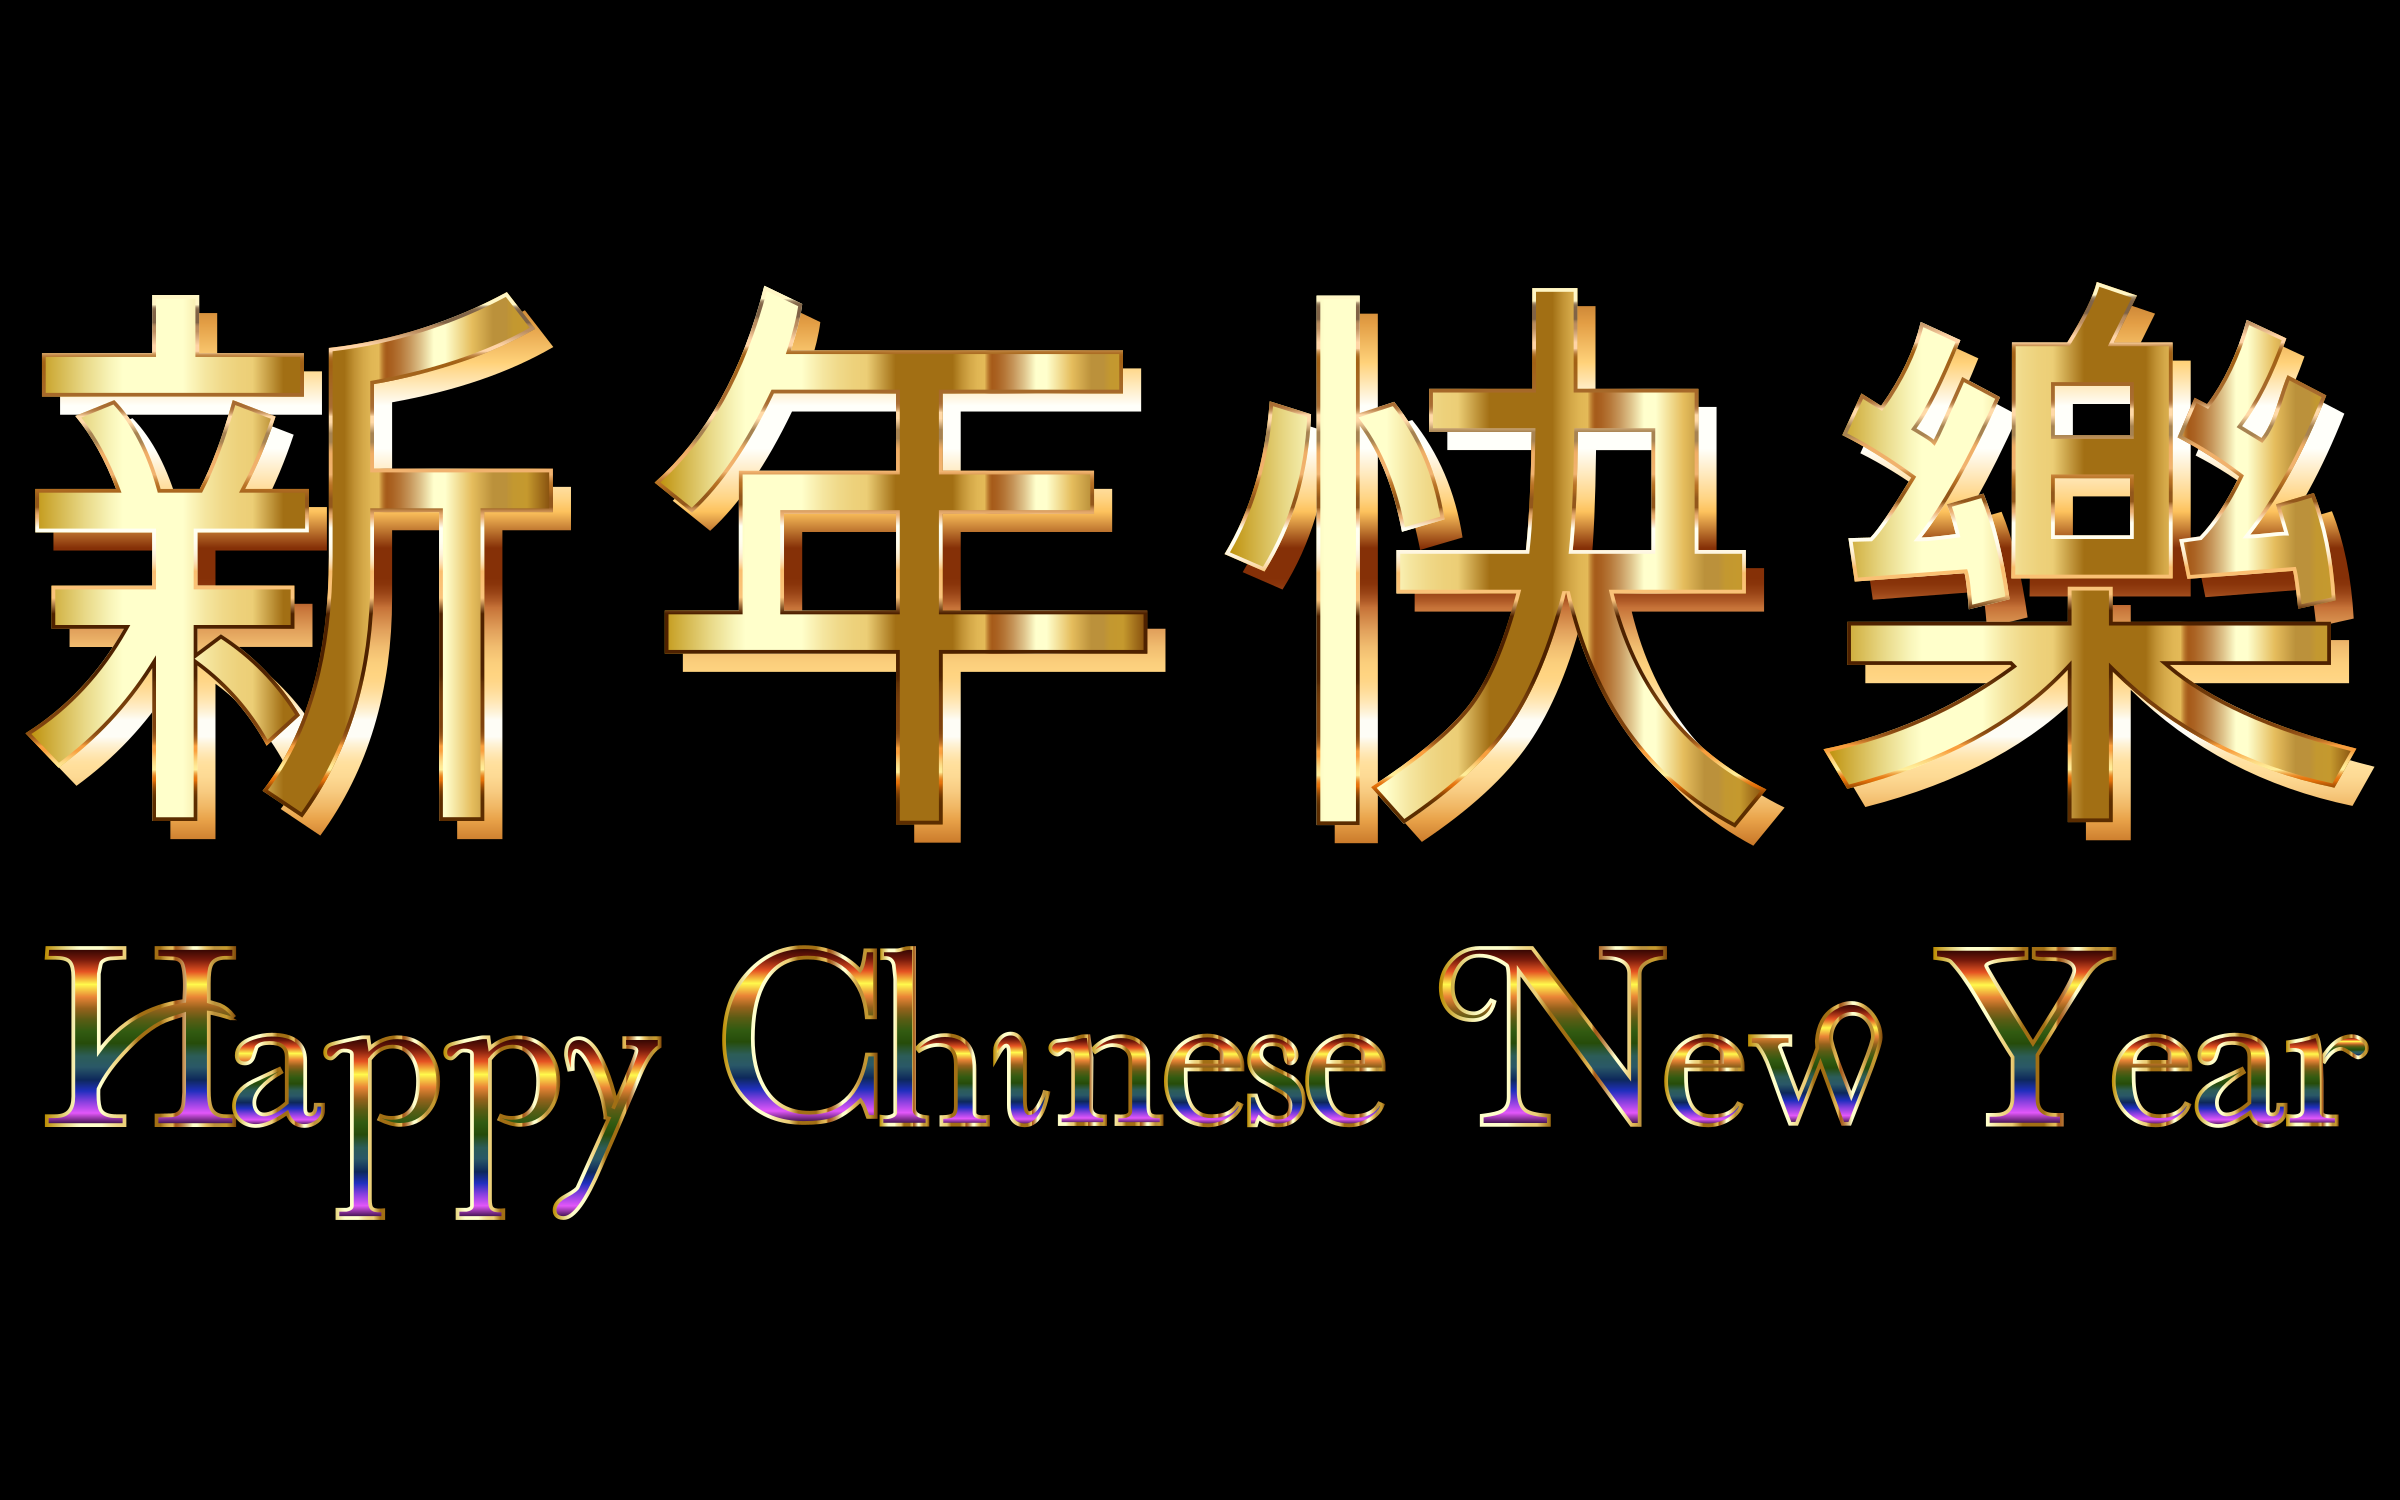 Happy Chinese New Year (2016) by GDJ